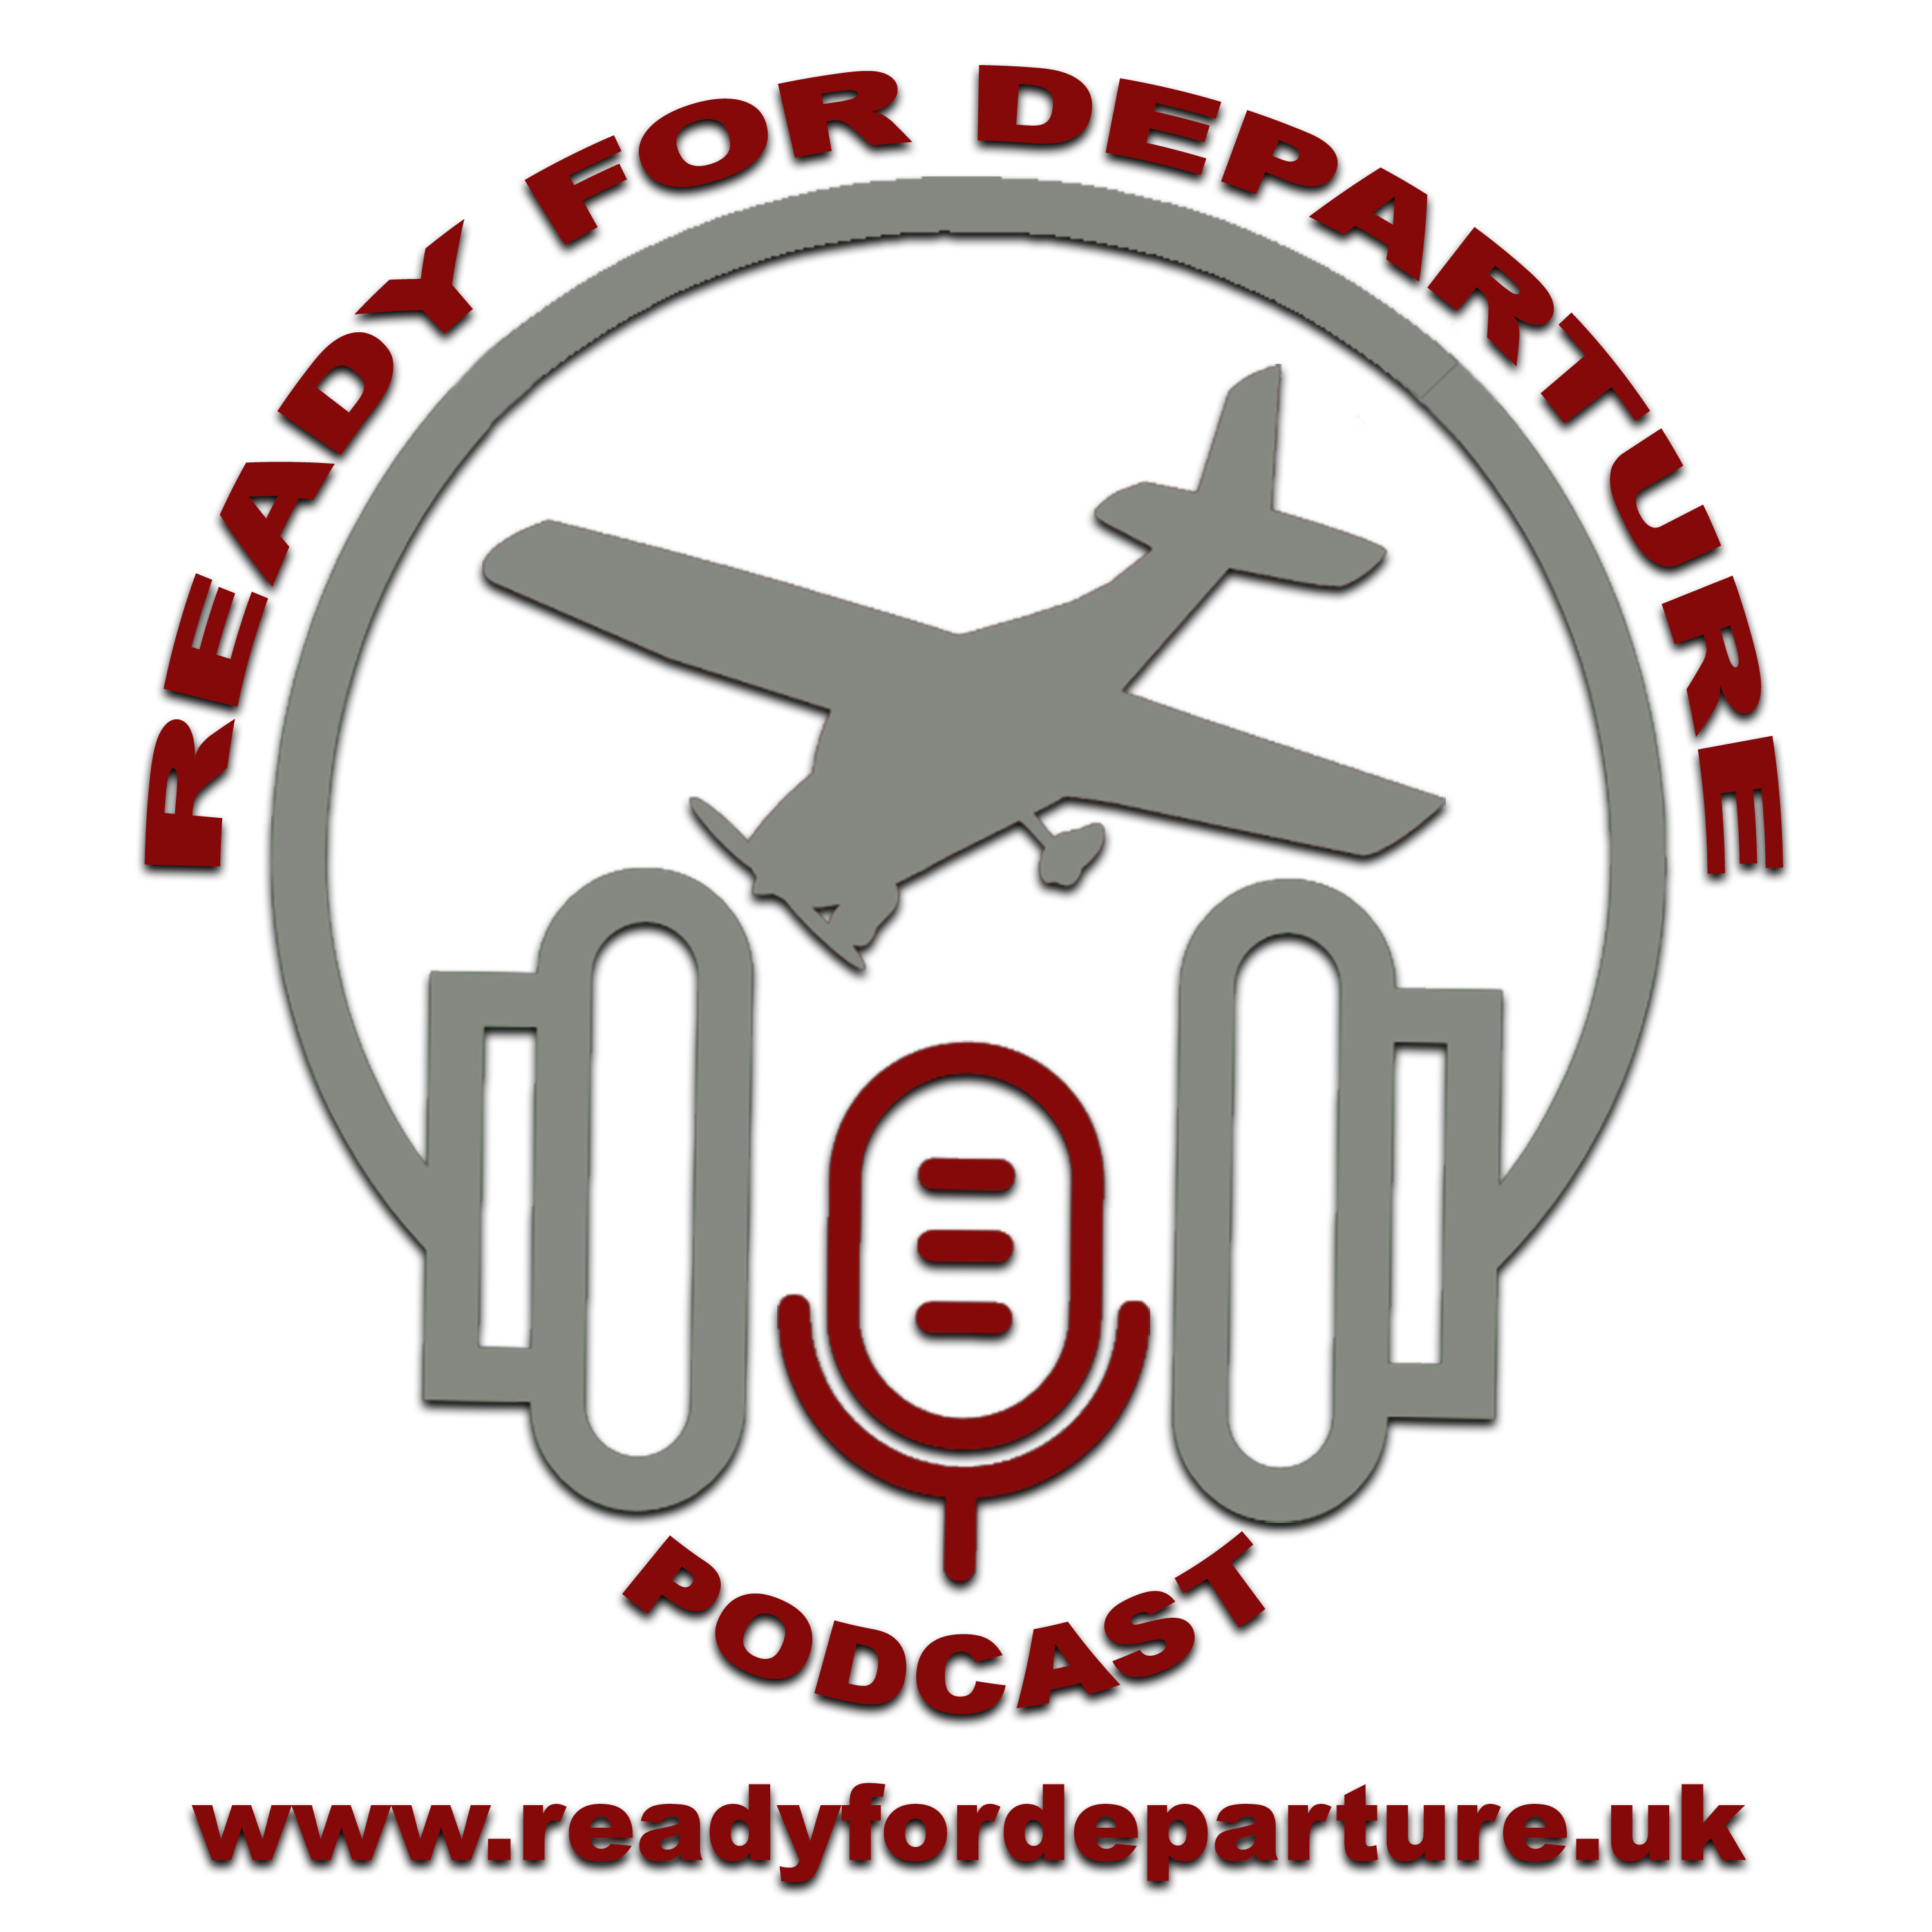 Ready for Departure Podcast